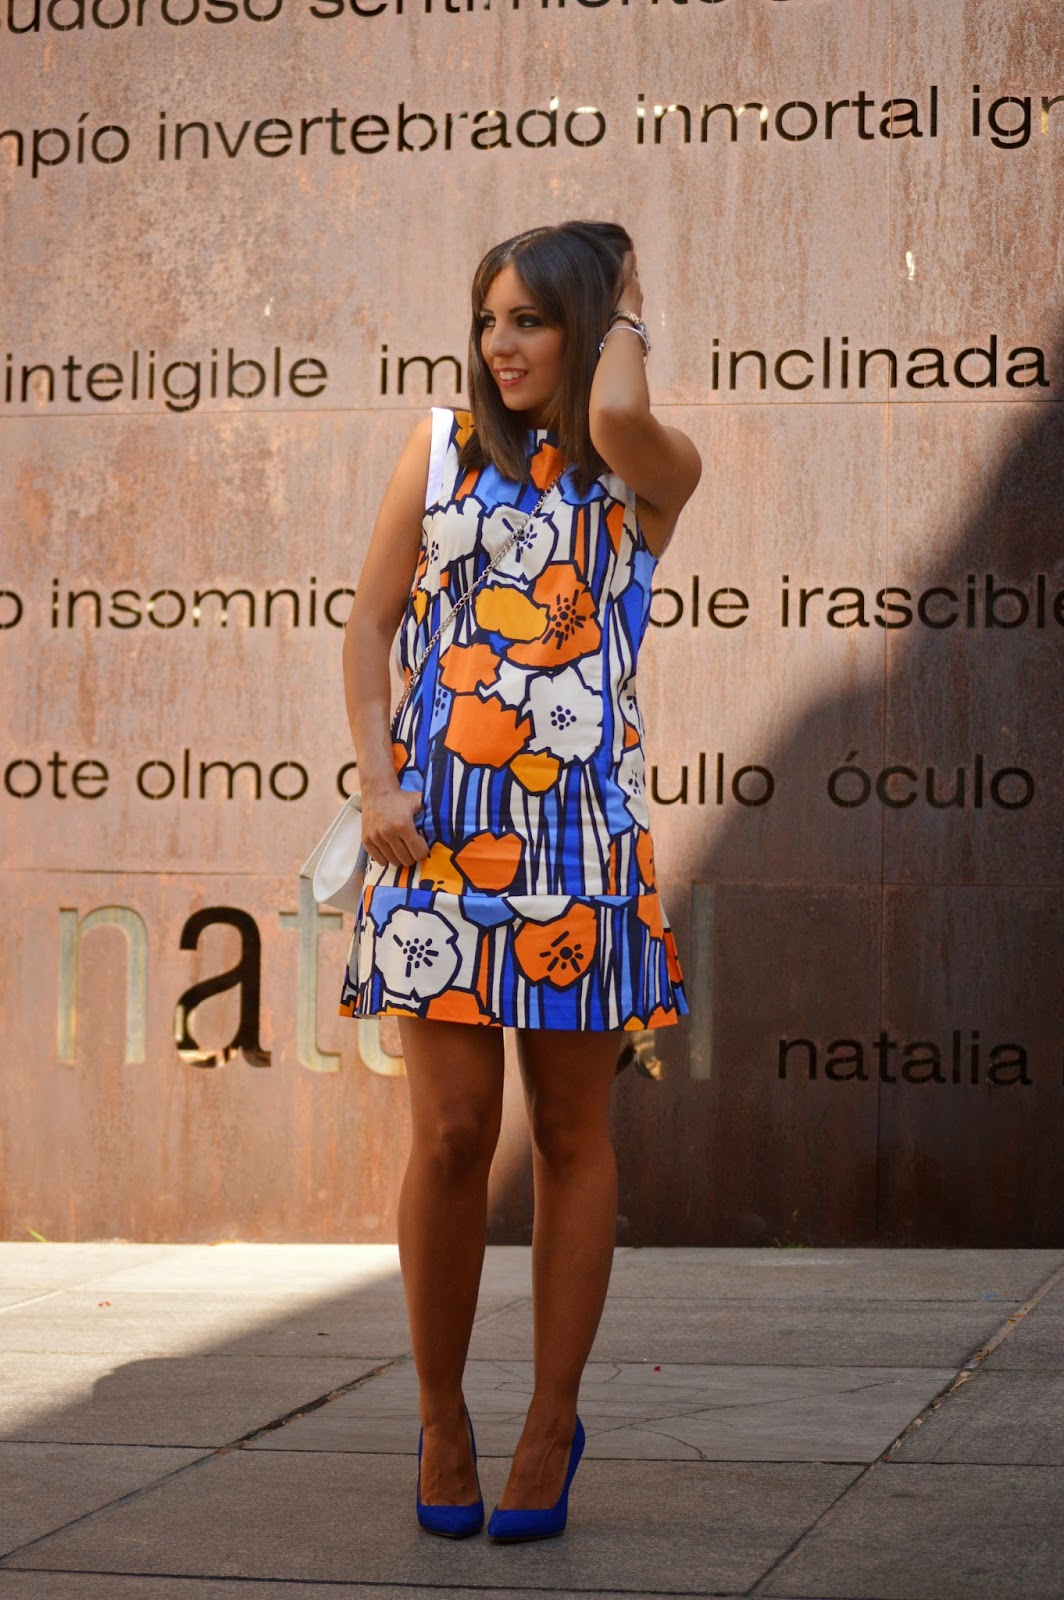 street style style fashion cristina style blog de moda fashion blogger malaga blogger malaga spain outfit look dress zara inspiration chic cute nice happy girl me picoftheday swag designer jewels